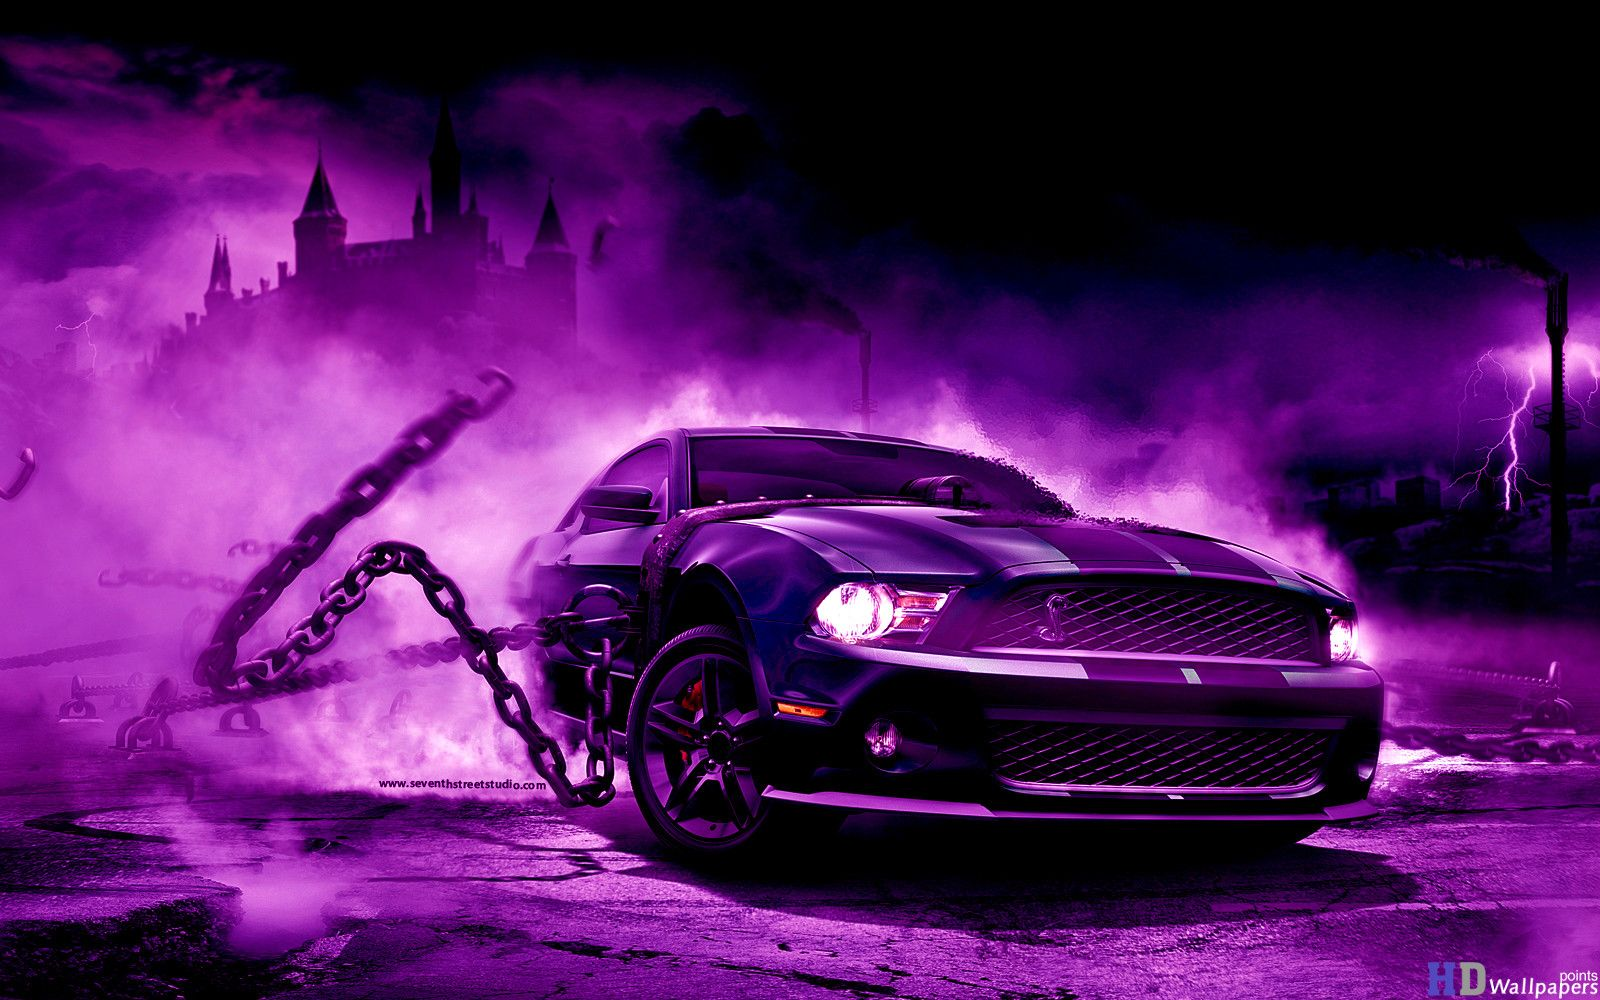 3d Car Wallpaper Cool Car 3d Wallpapers Hd Background Desktop 14500 Wallpaper